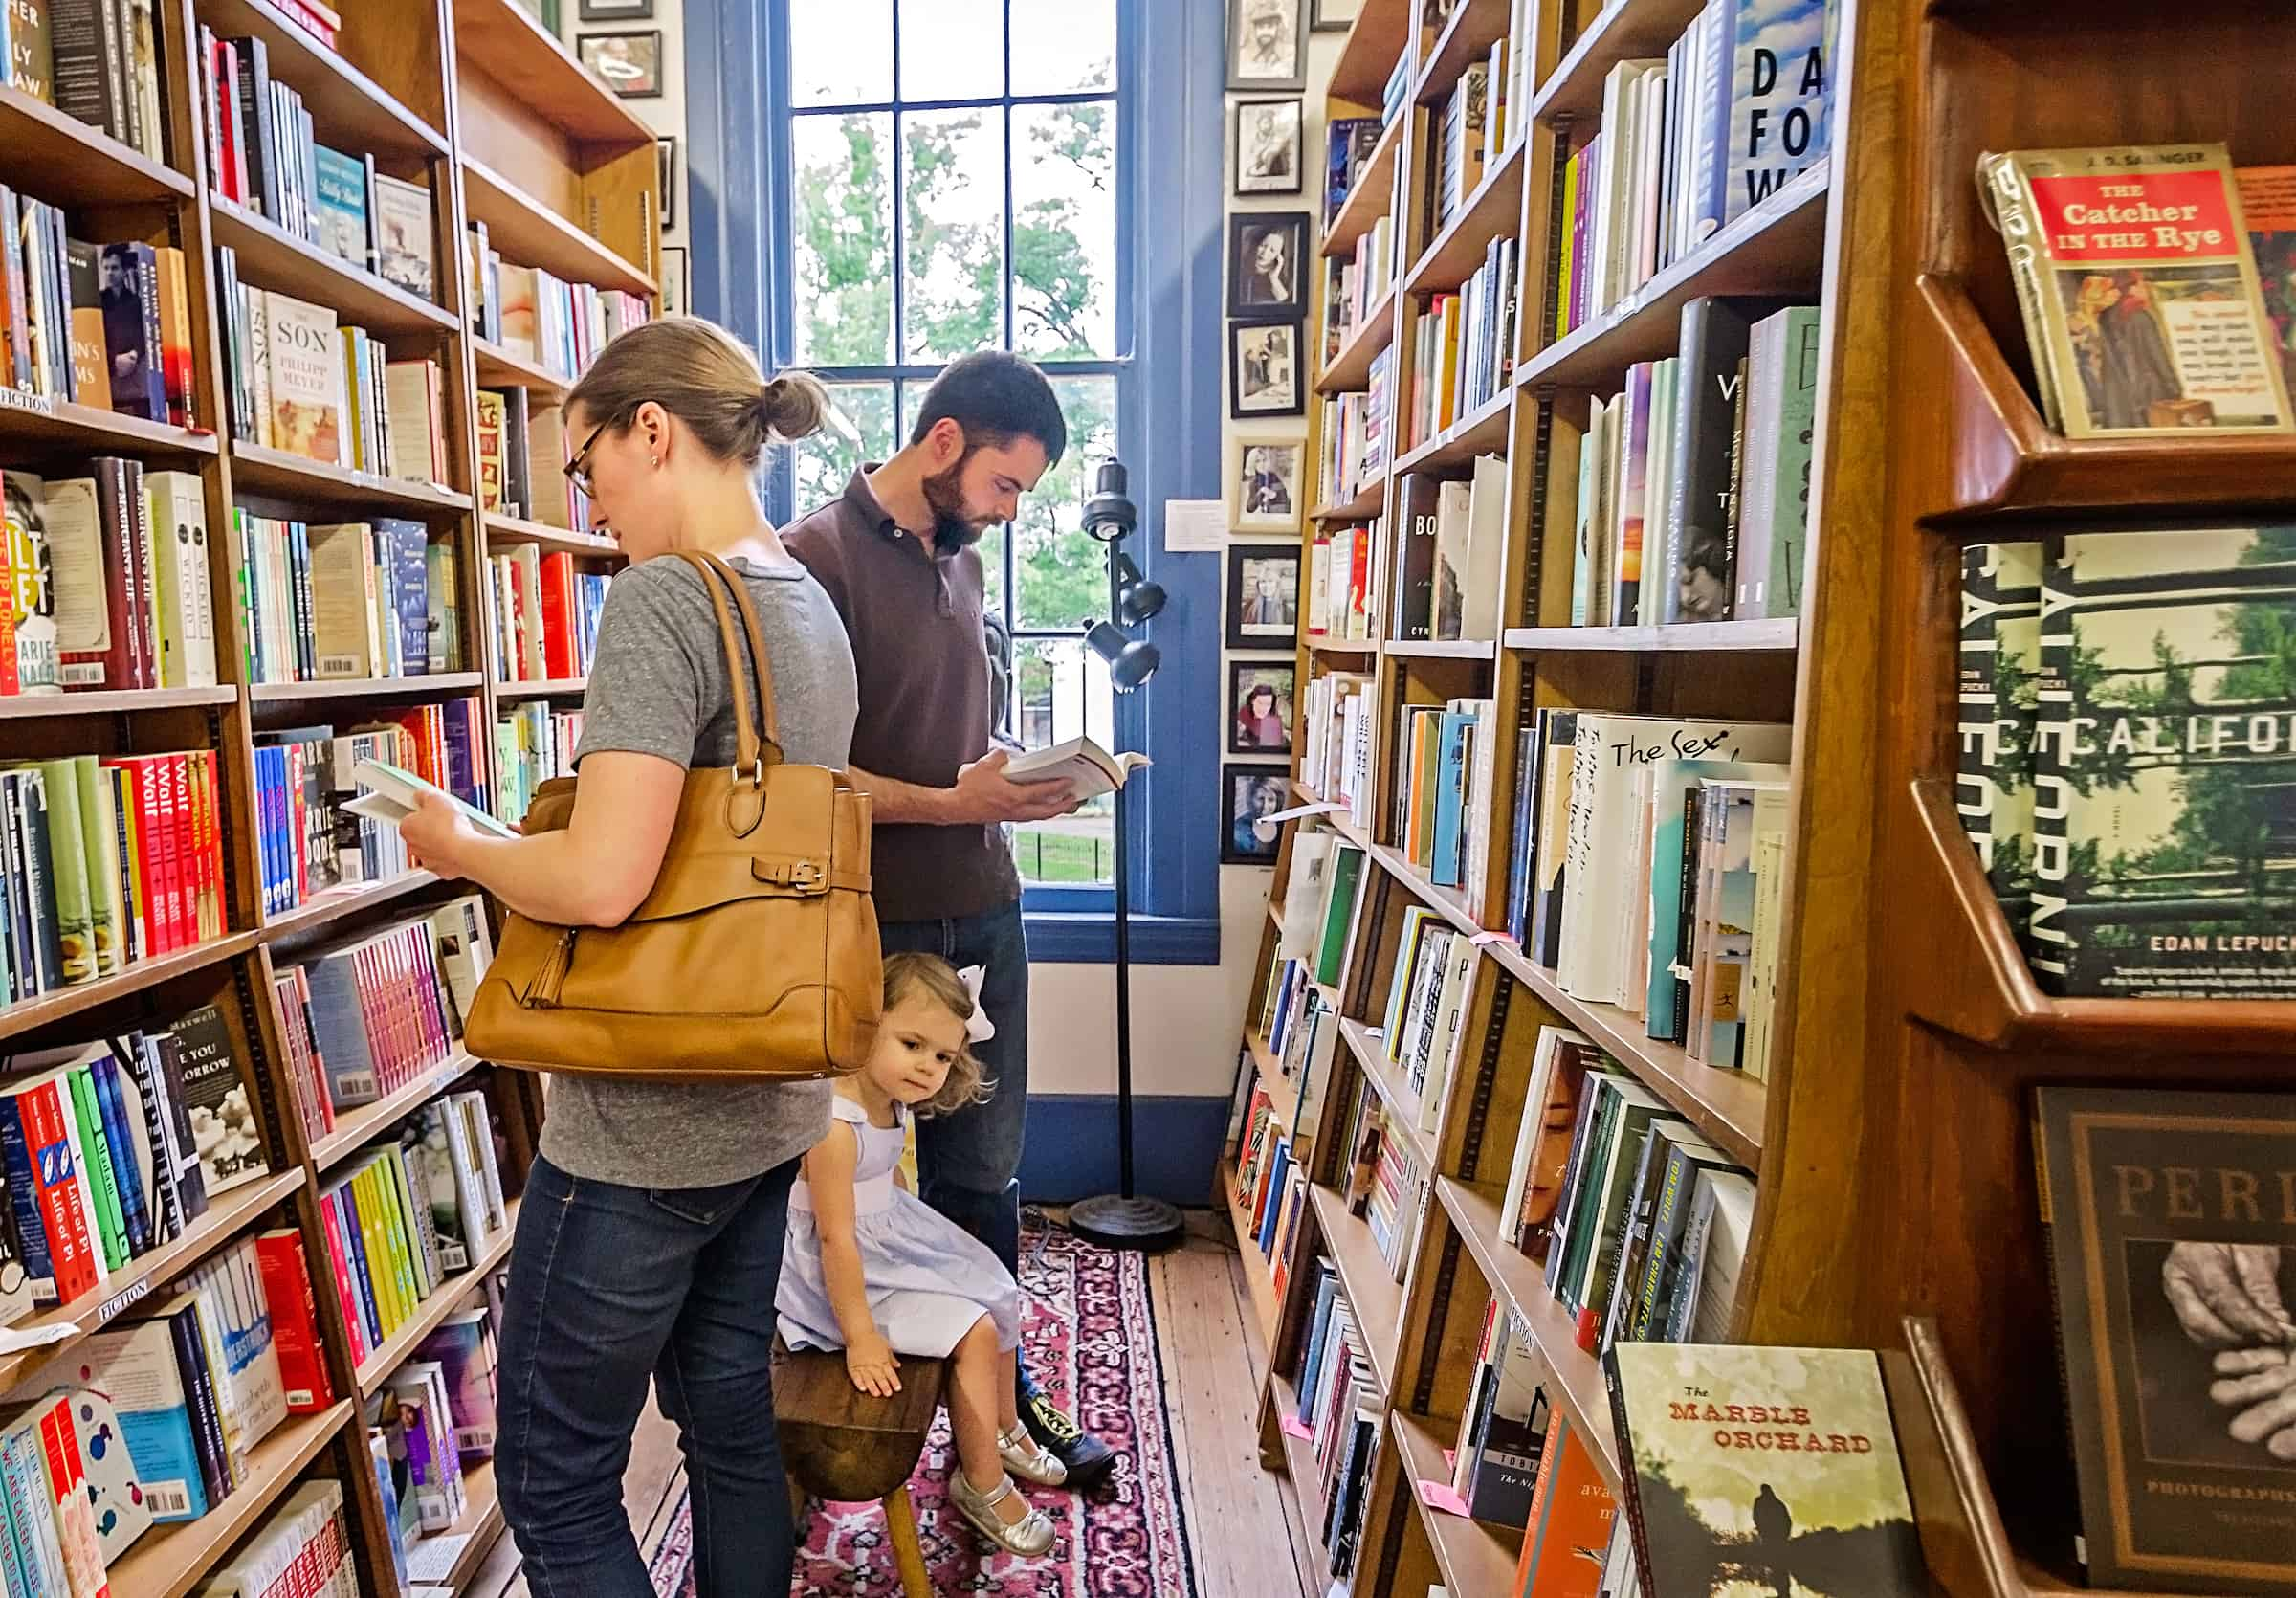 Family shops for books at Square Books bookstore in Oxford Mississippi